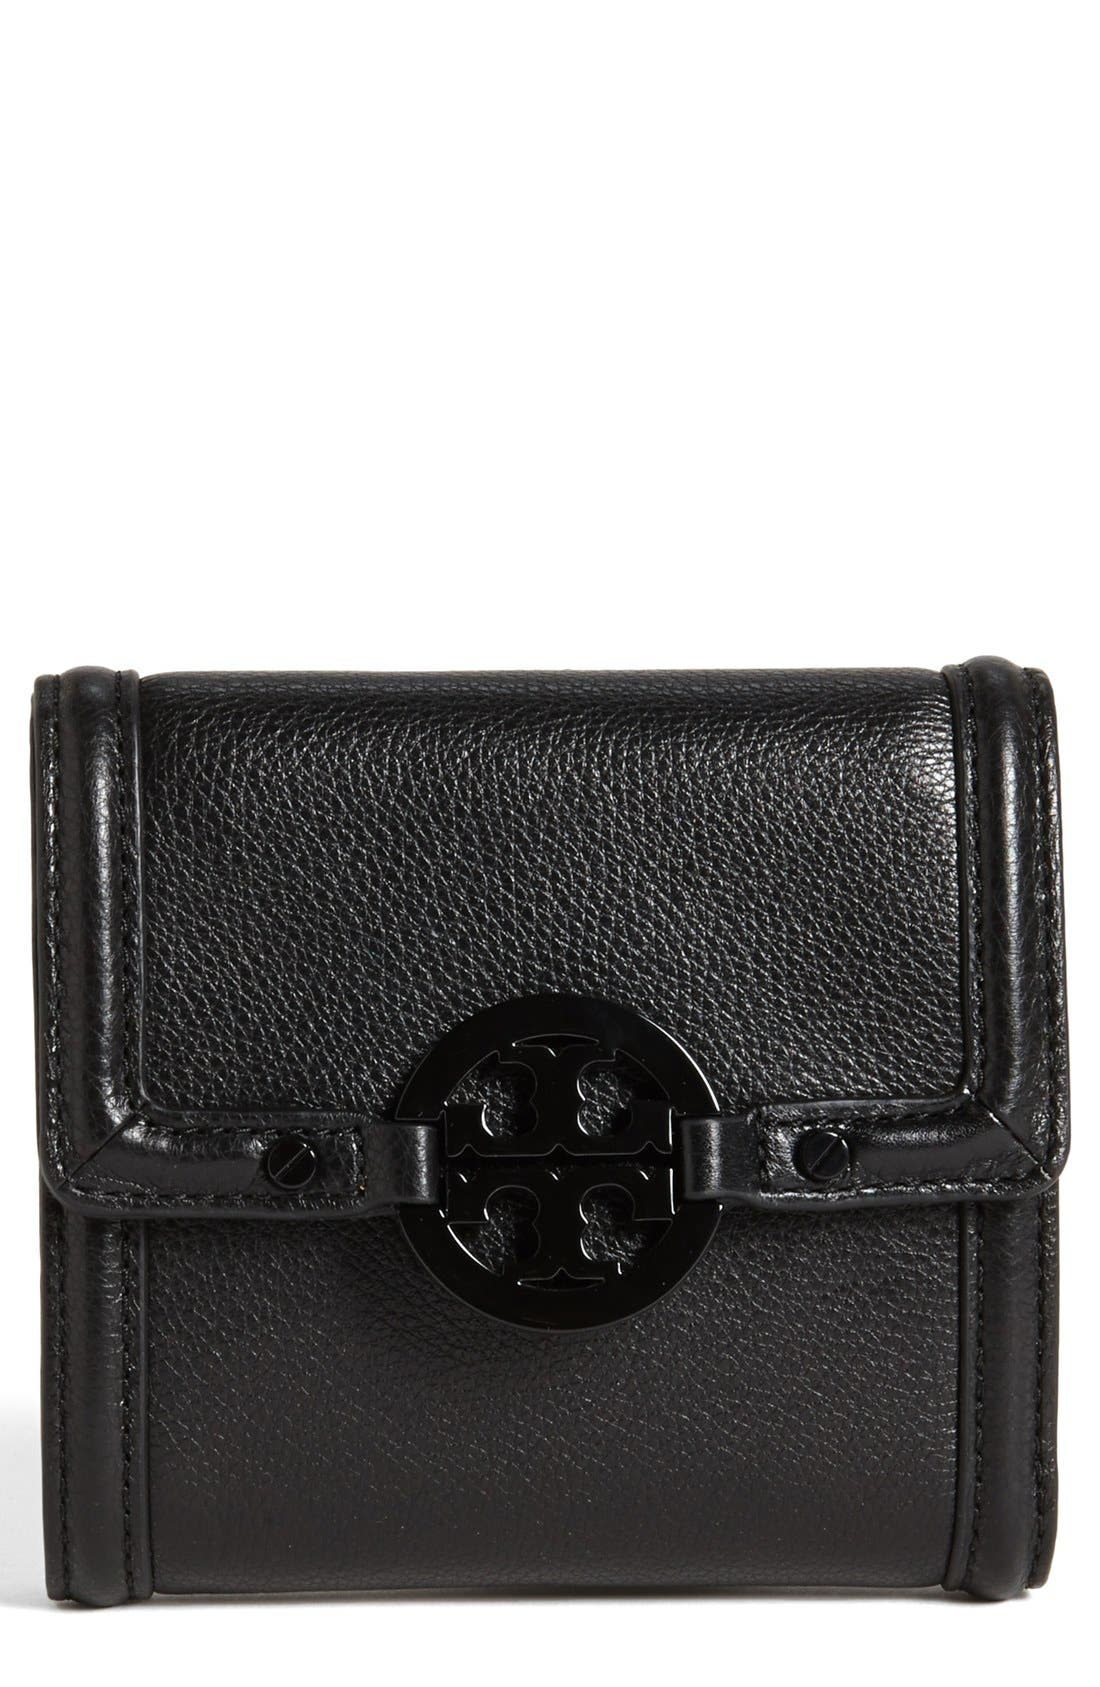 Alternate Image 1 Selected - Tory Burch 'Amanda' Trifold French Wallet